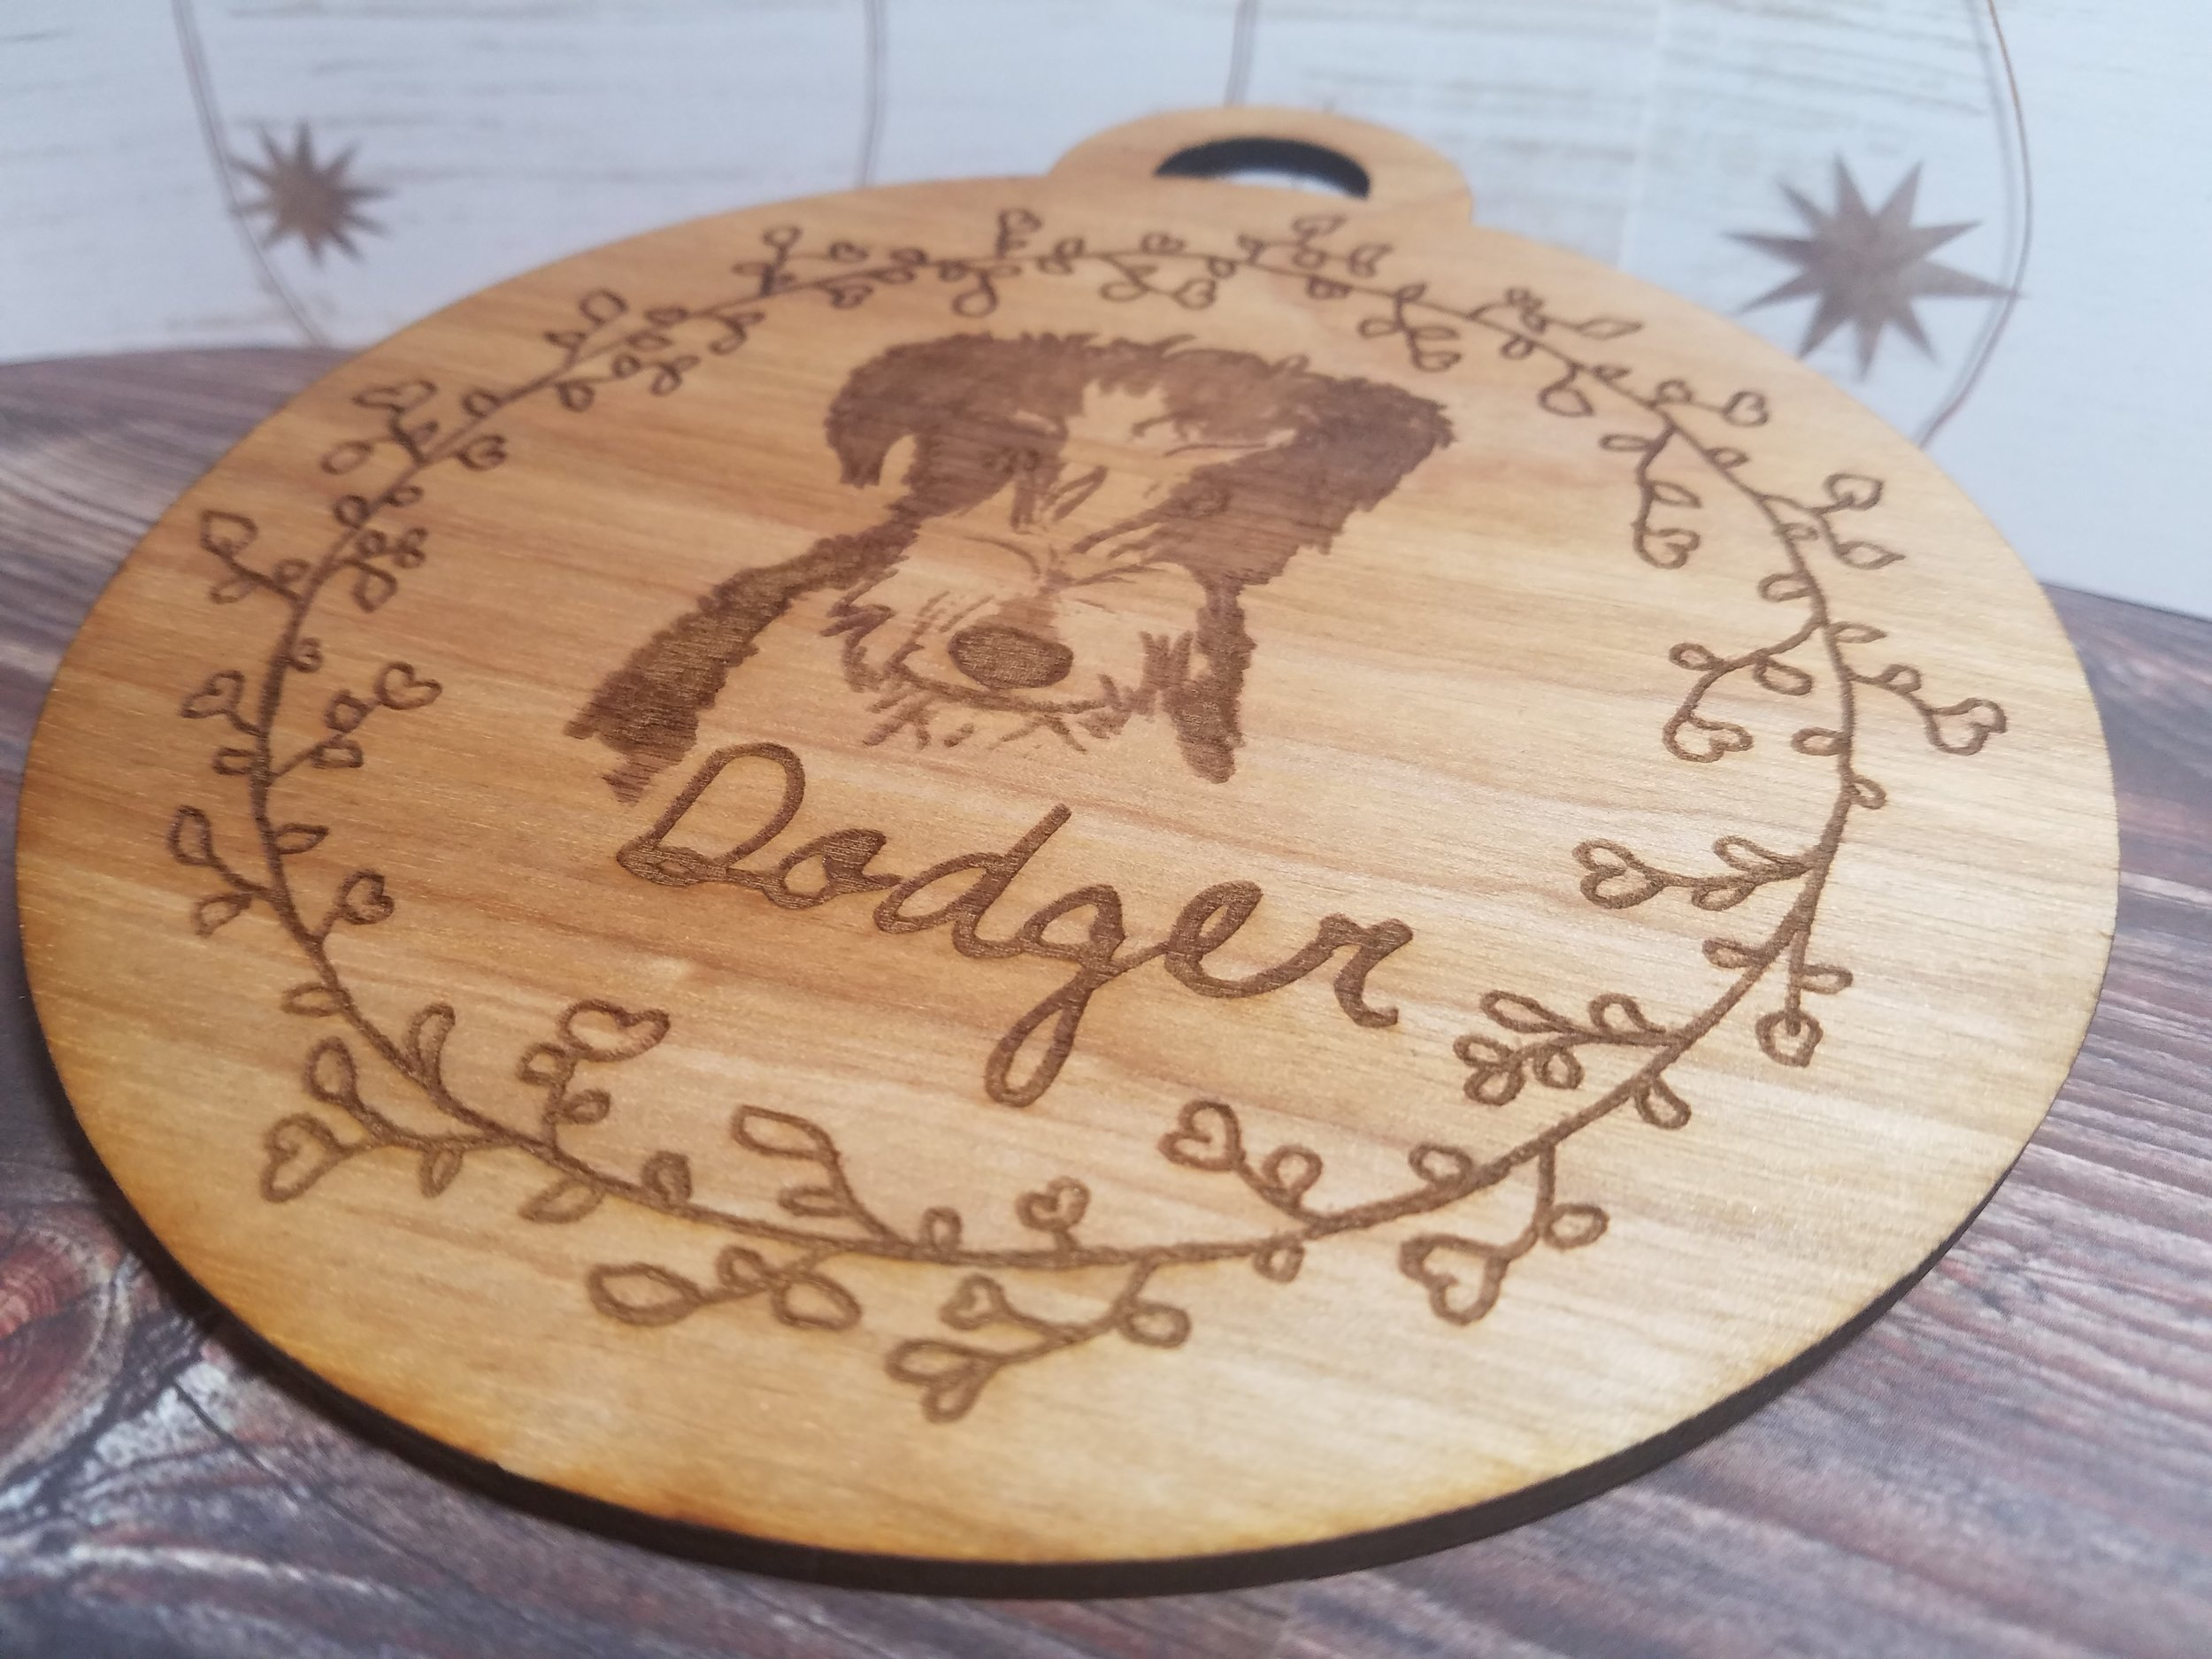 Hand drawn sketch Laser etched on a wooden ornament as a Memorial of the best dog ever.